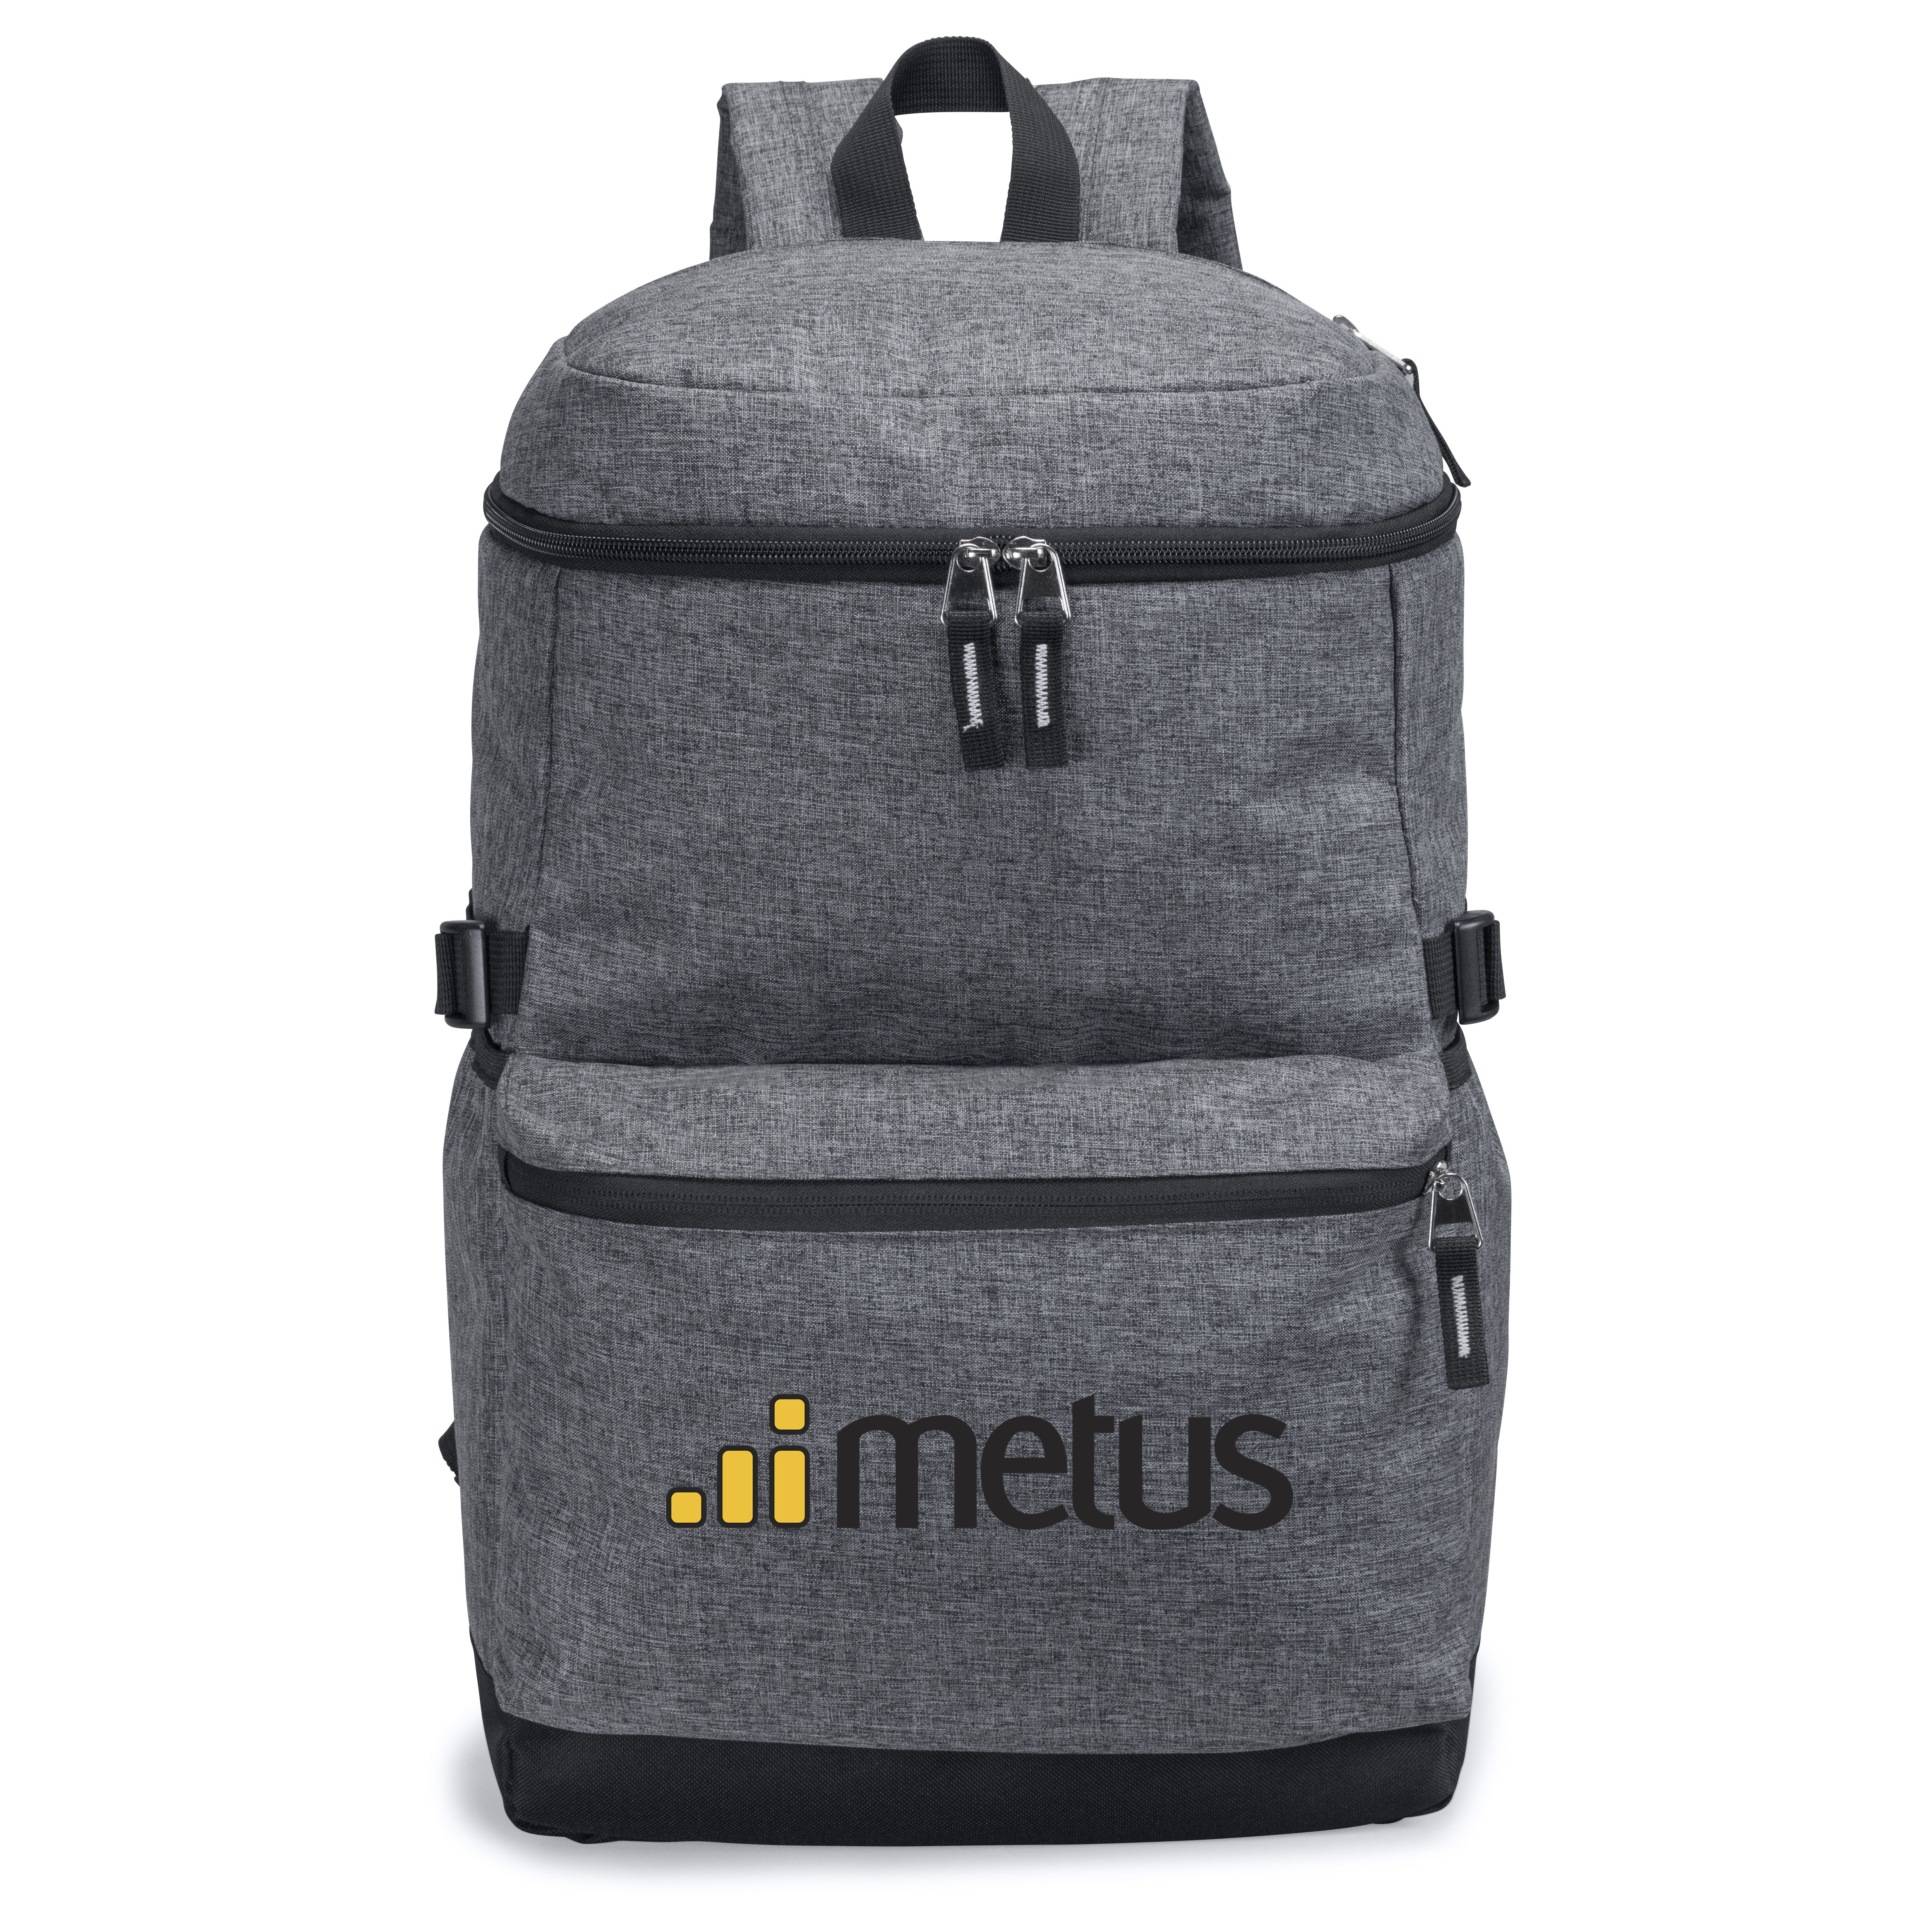 CHRISTIAN COMPUTER BACKPACK